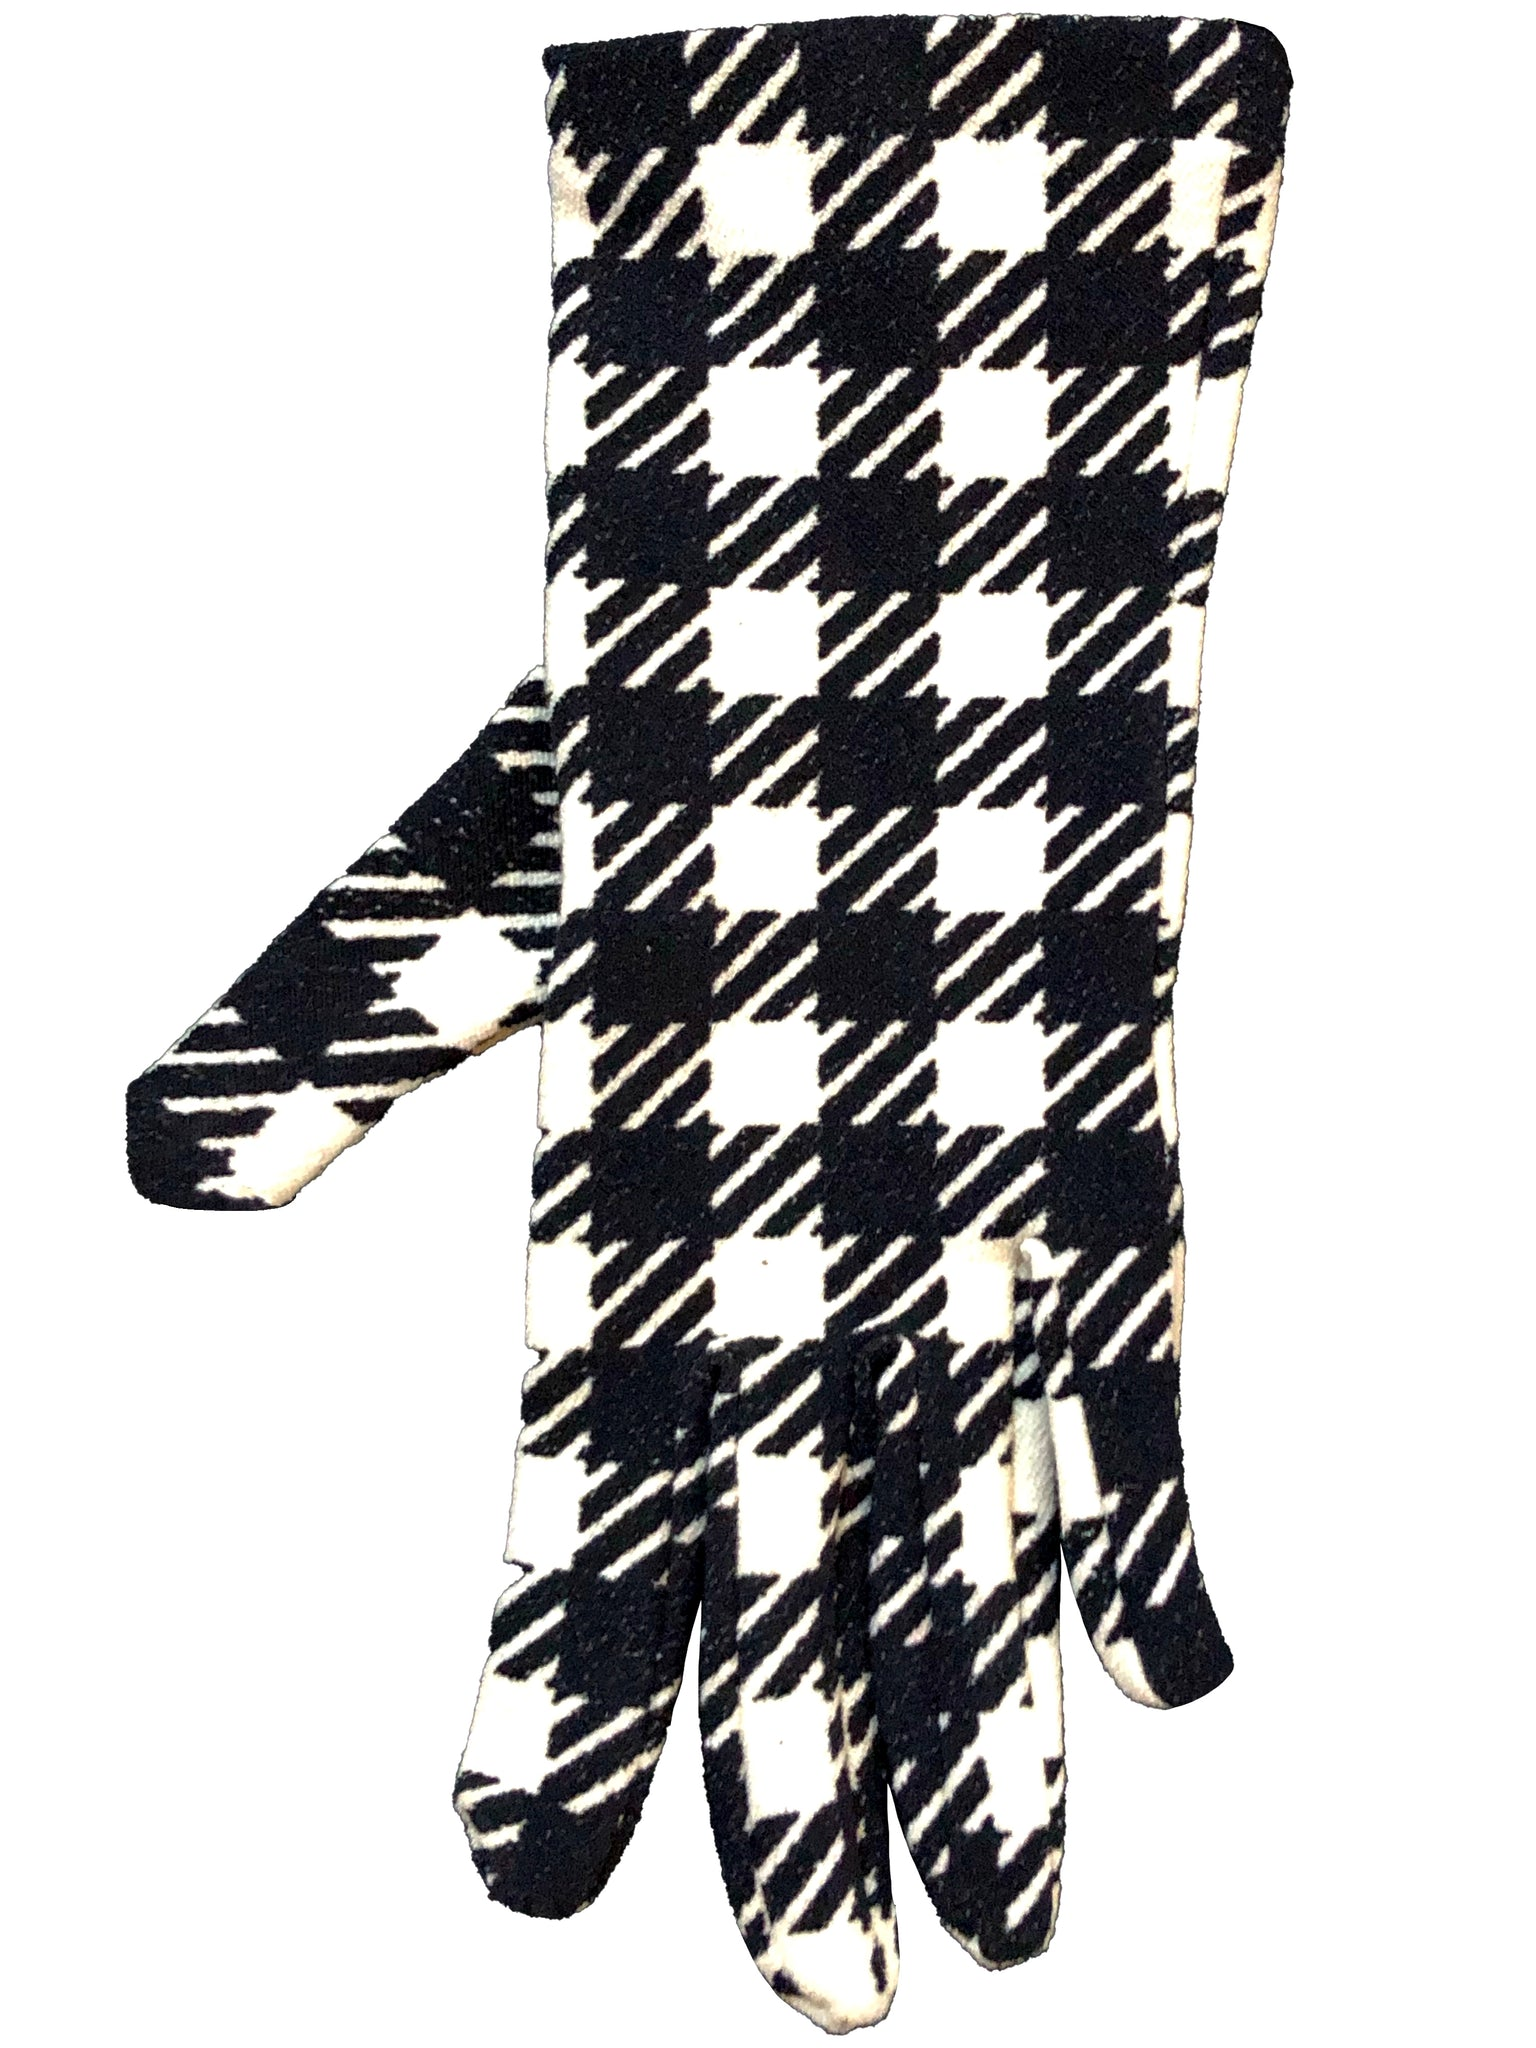 Alaia Iconic Black and White Houndstooth Gloves SINGLE 2 of 3